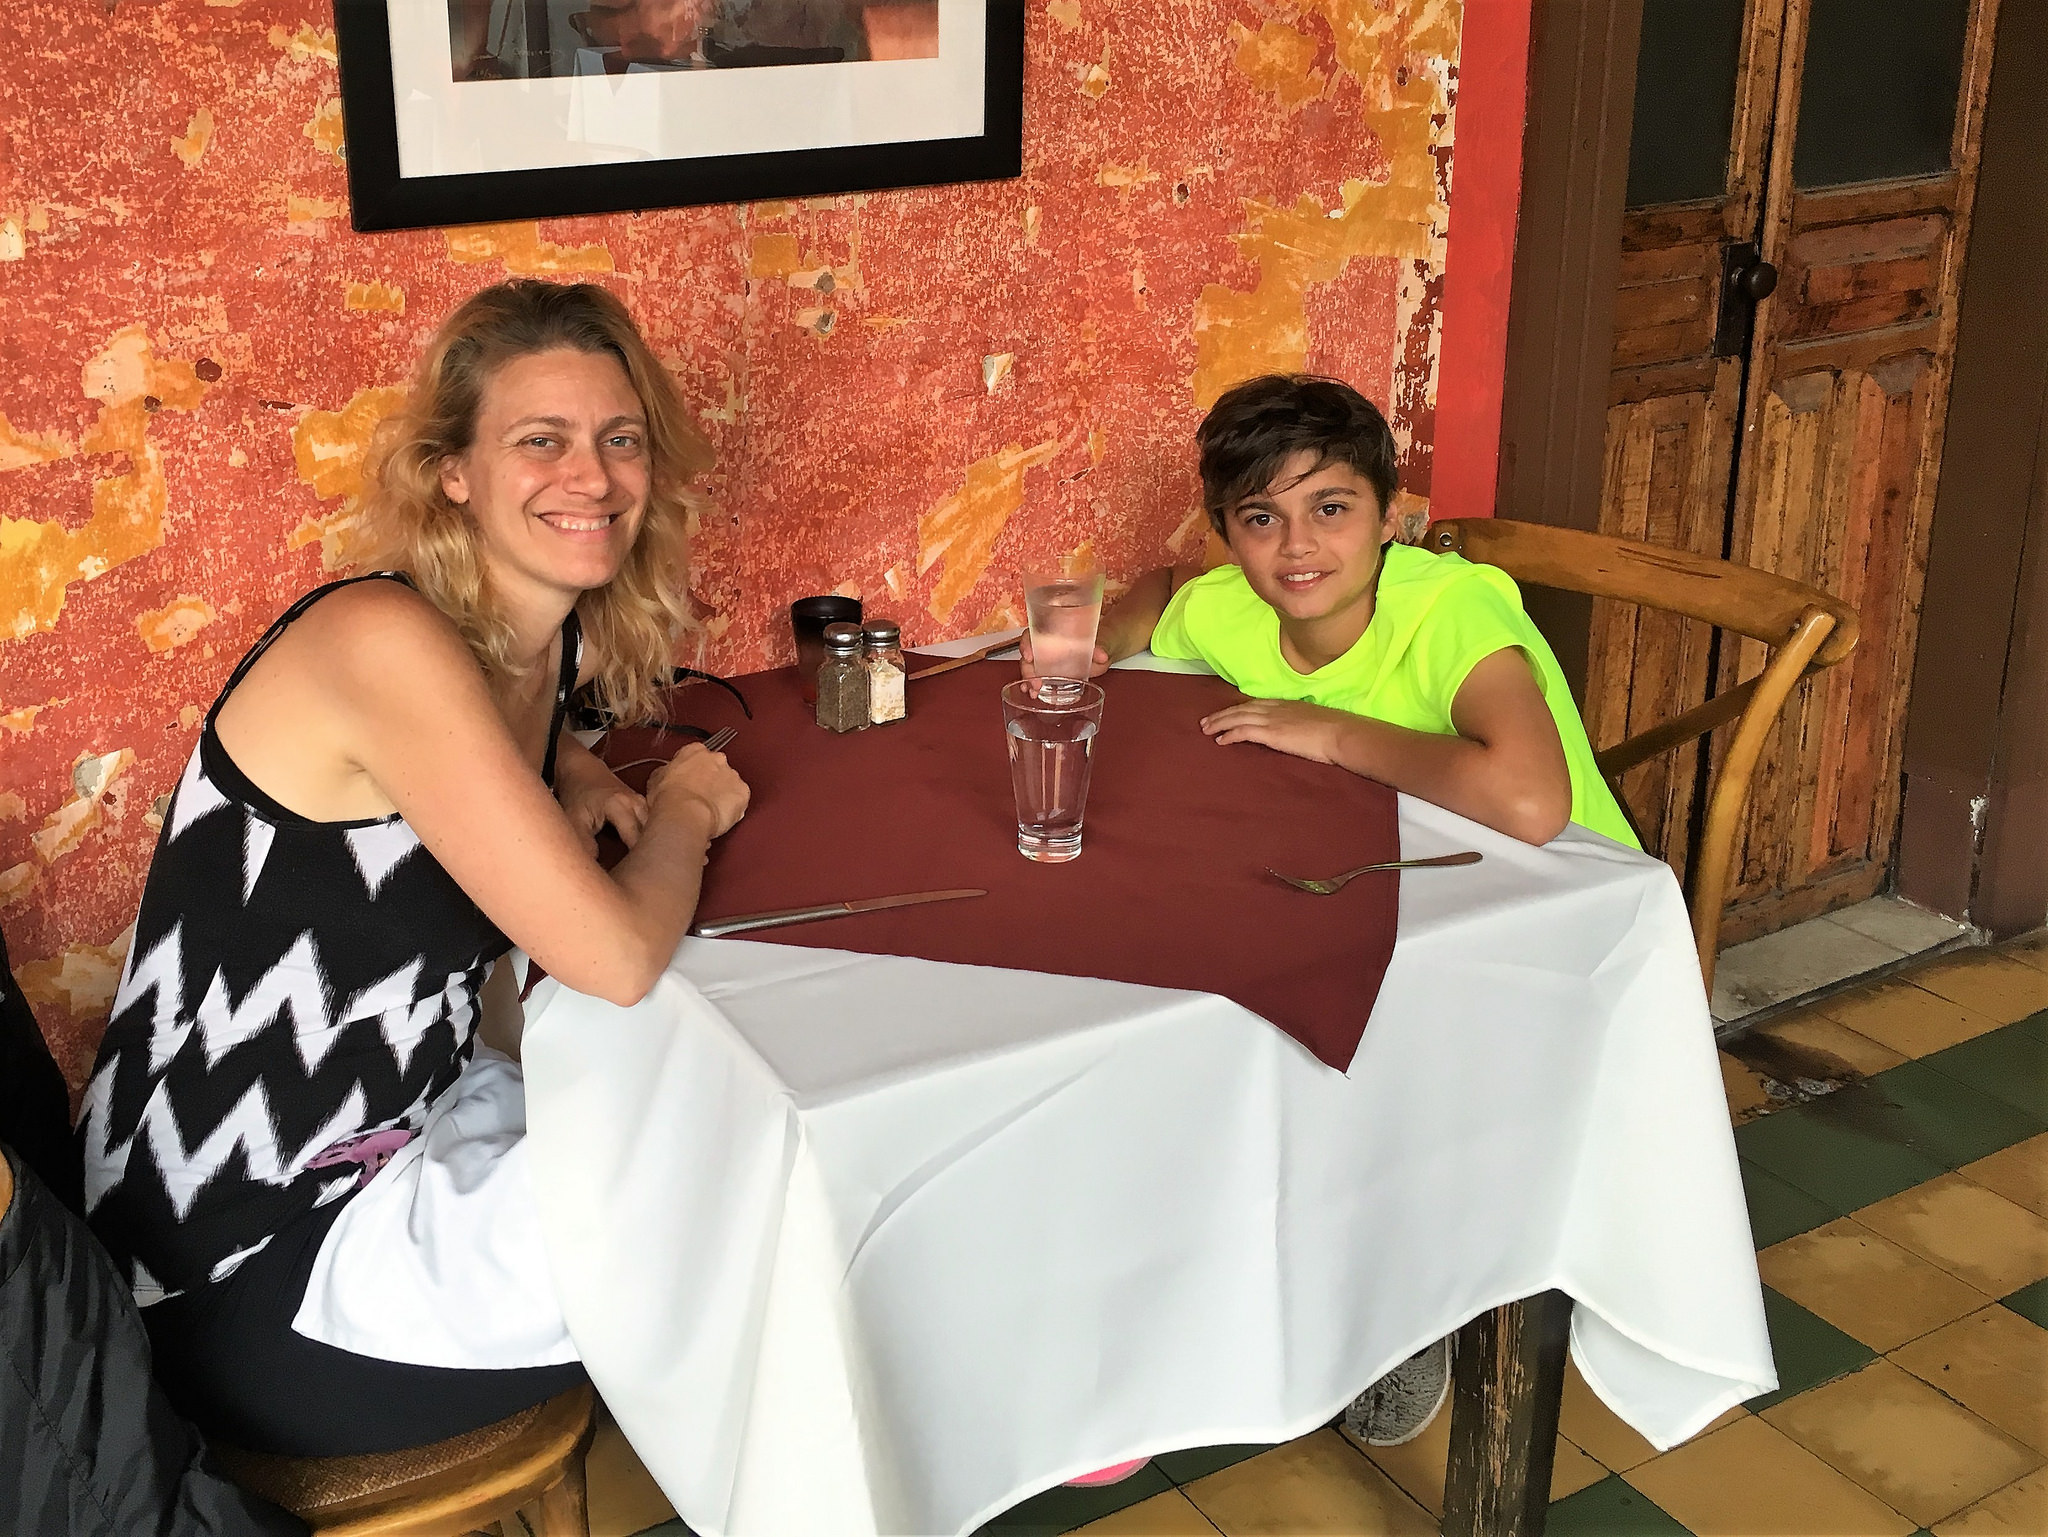 Mother Son Relationship, mother and son restaurant outings